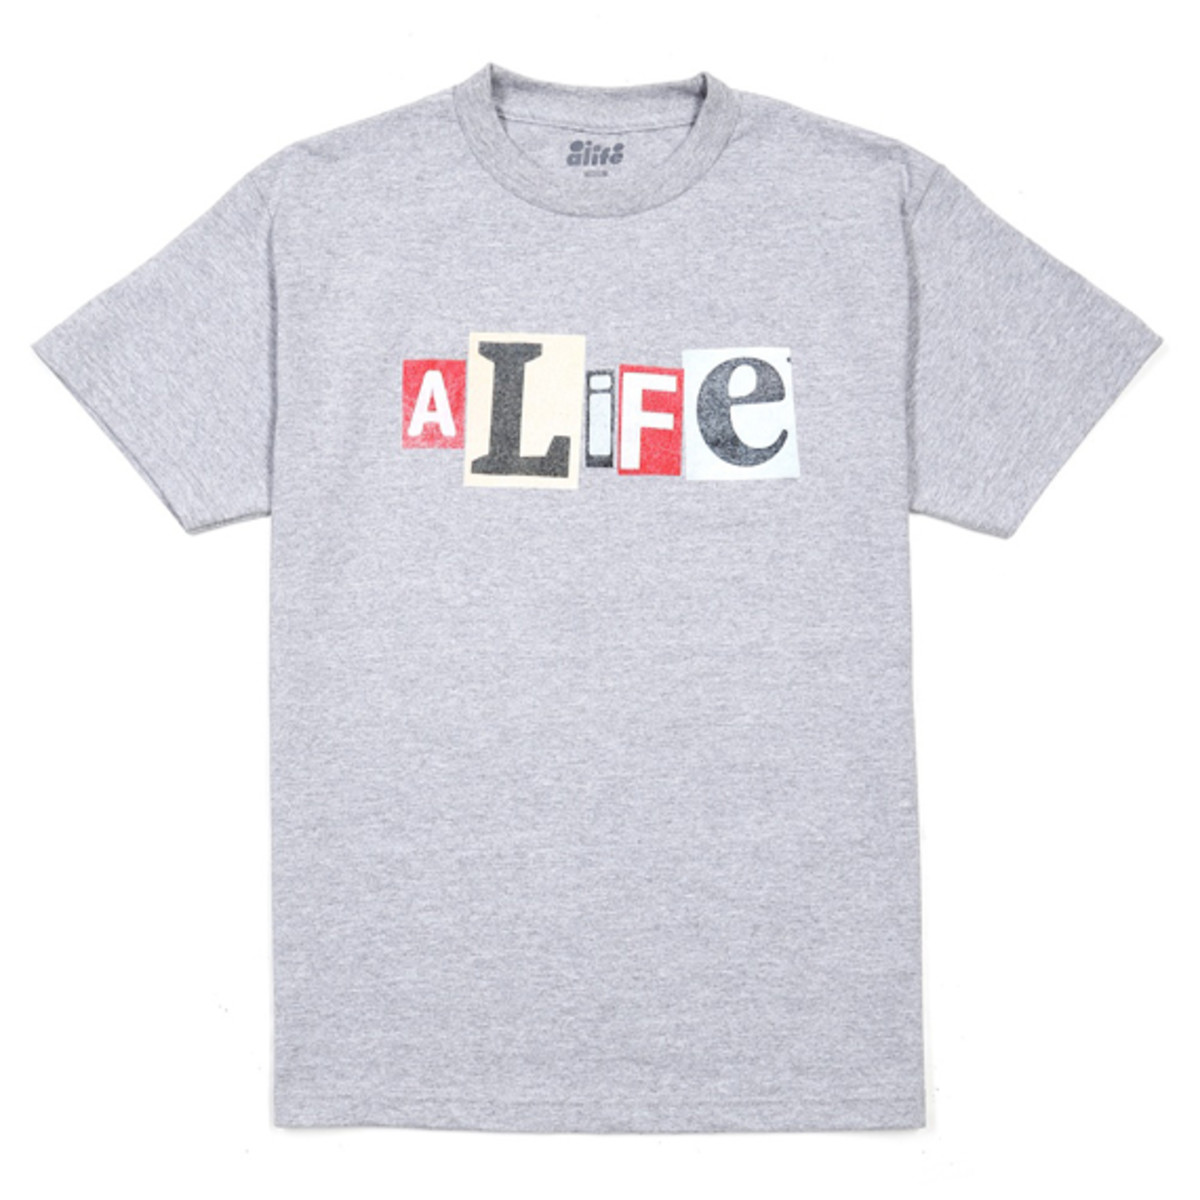 alife-tshirts-october-2013-releases-07